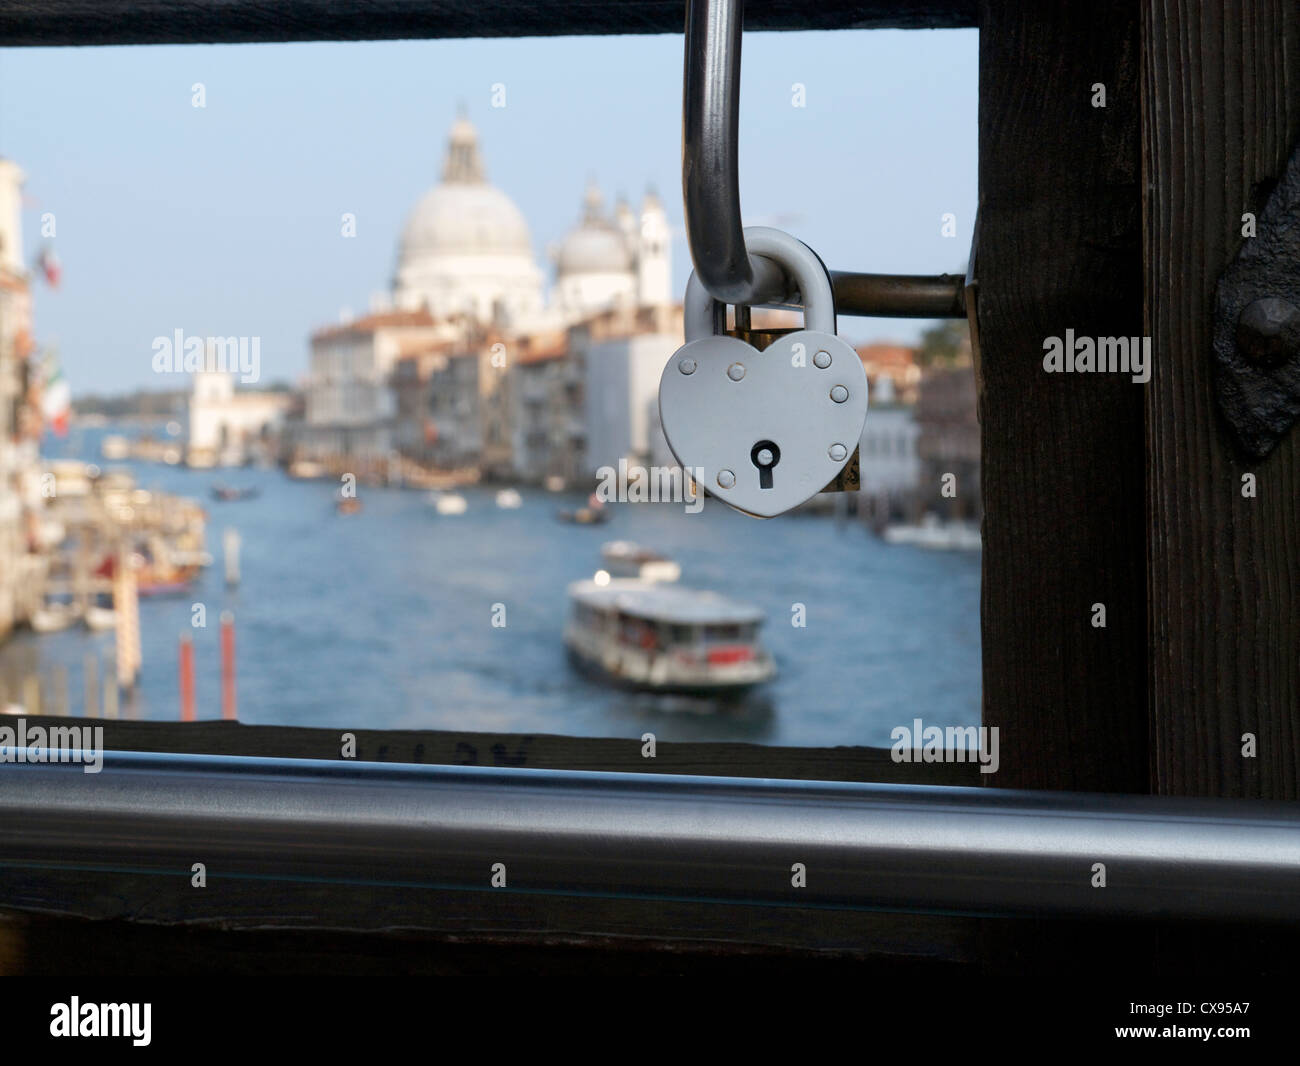 heart shaped love locks lovers padlock attached to the Ponte dell'Accademia bridge over the Grand Canal Venice Italy Stock Photo